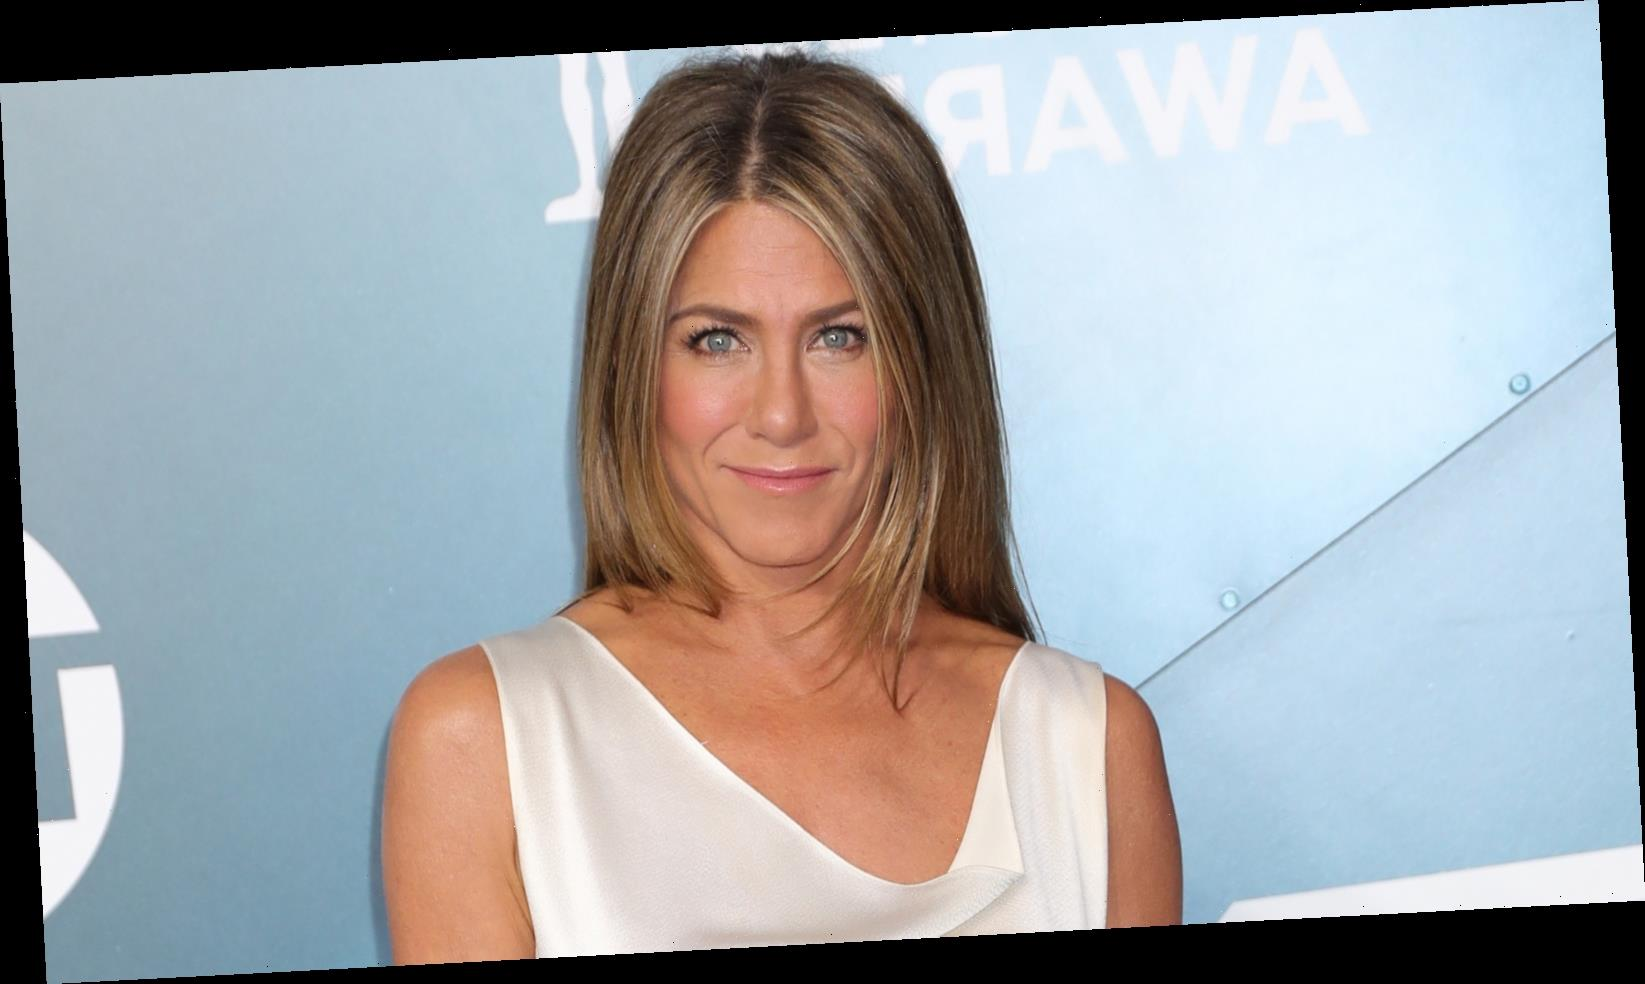 Jennifer Aniston's Pandemic Ornament Has The Internet Divided